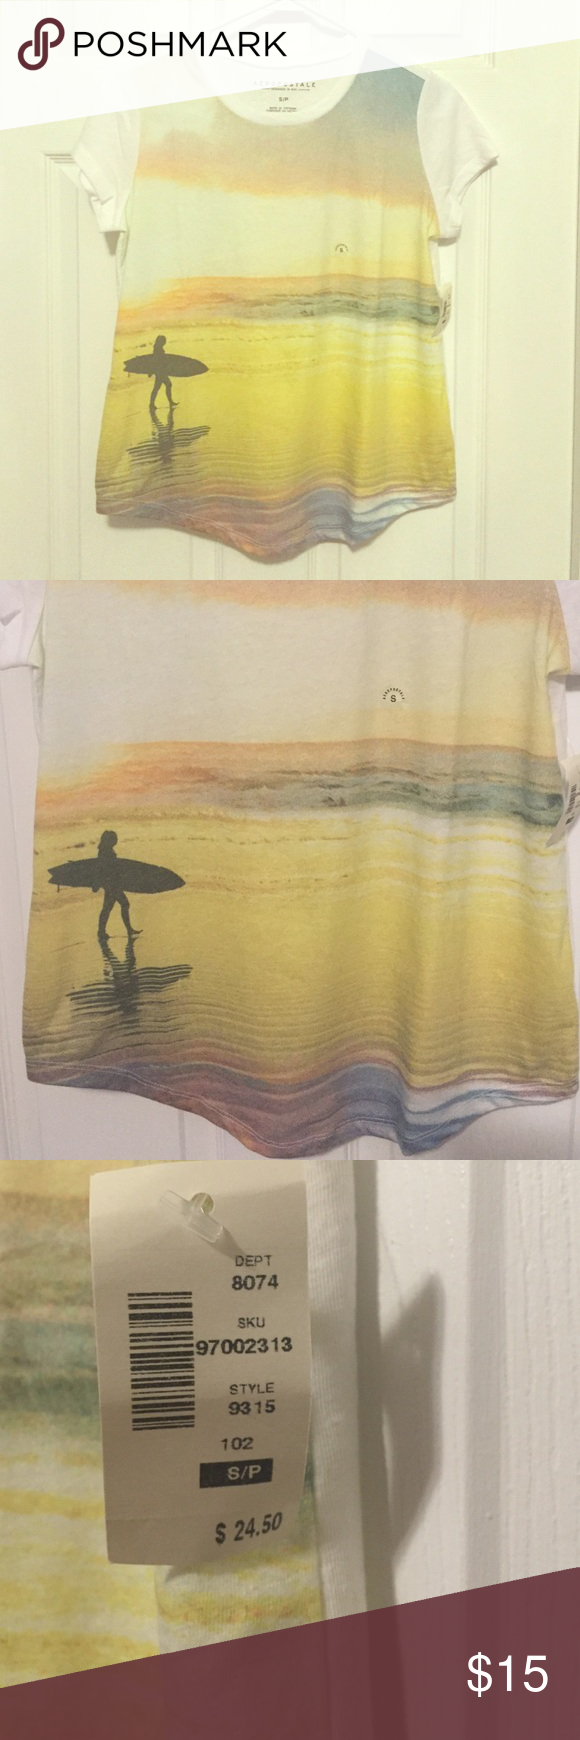 Aéropostale Surfer Tee Surfer tee purchase in NYC location. New with tags. Never worn. Very cute! Aeropostale Tops Tees - Short Sleeve